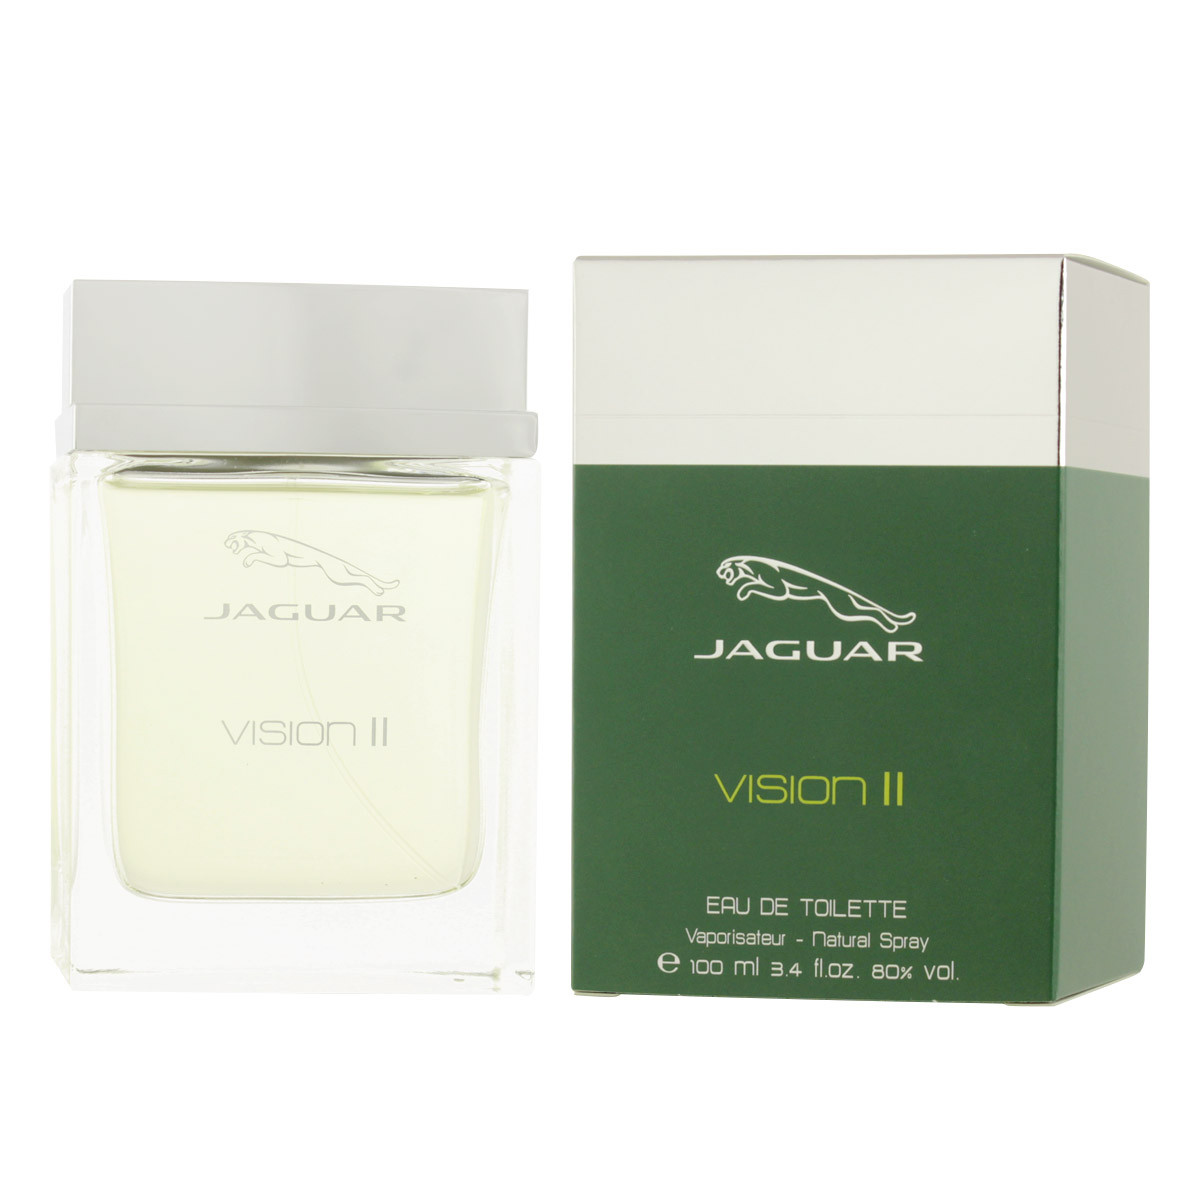 jaguar vision ii eau de toilette 100 ml man vision ii. Black Bedroom Furniture Sets. Home Design Ideas